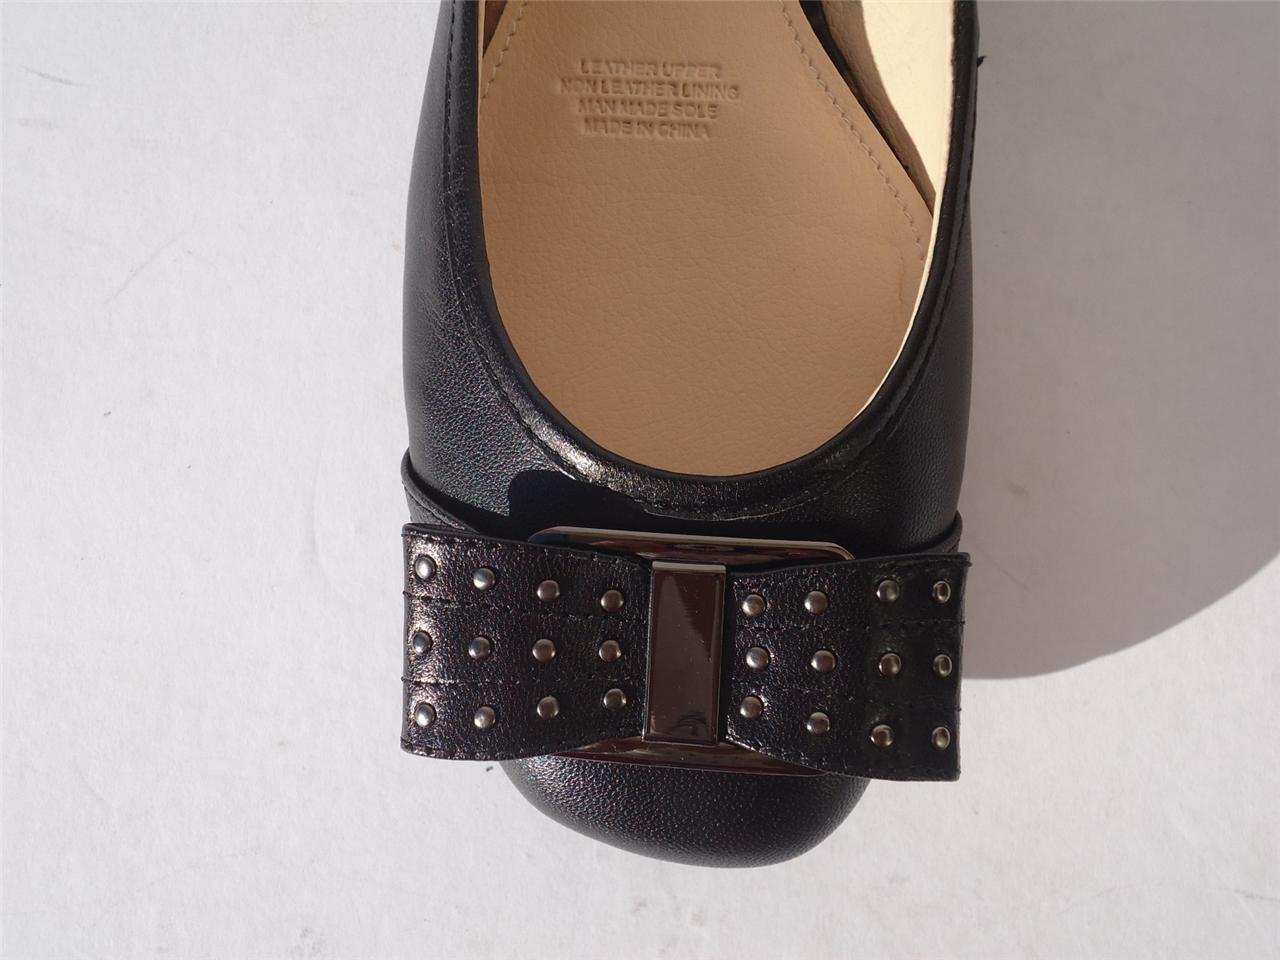 New-Womens-Ladies-Leather-Shoe-Ballet-Flat-Diana-Ferrari-Black-Sizes-9-10-11